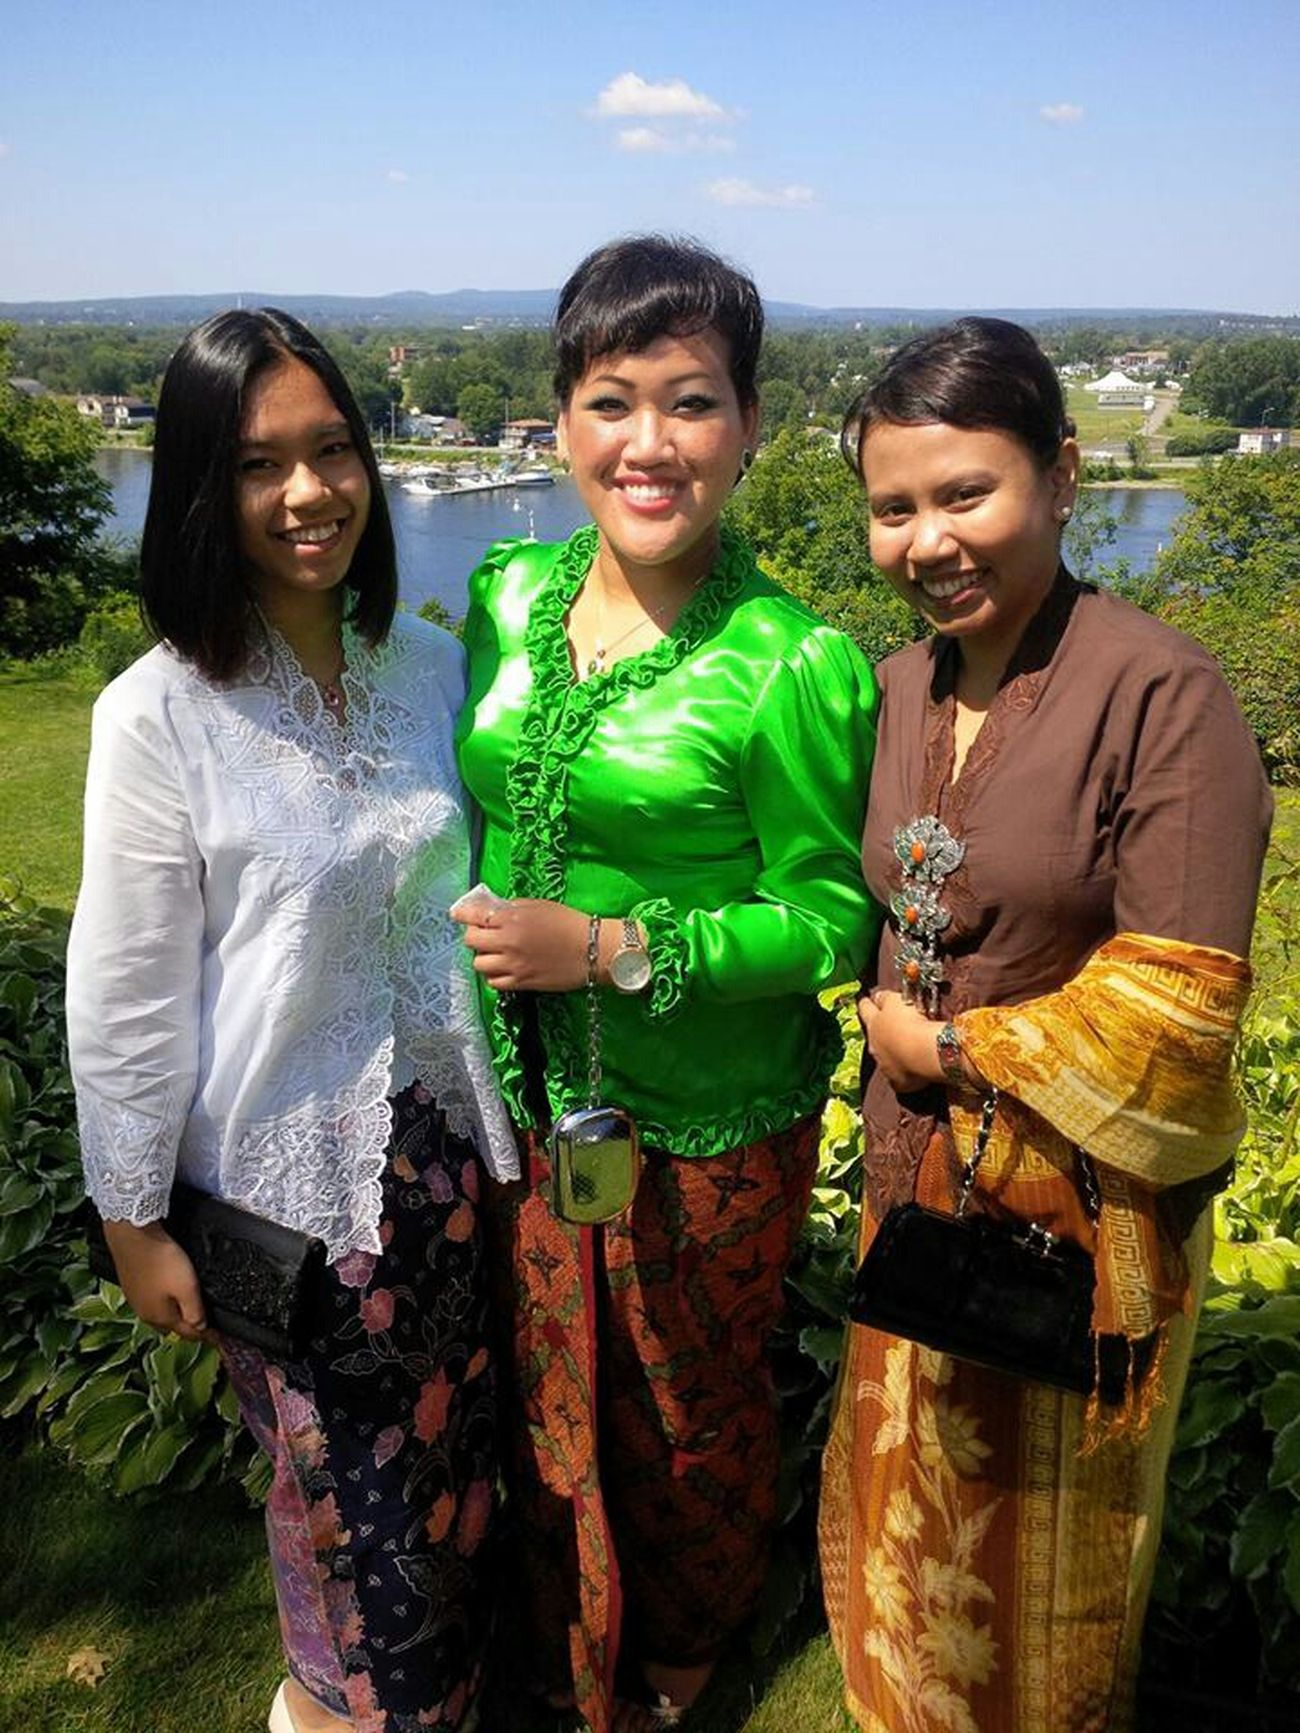 Fashion Kebayadress Kebayamodern Kebaya Indonesia Kebaya Fashionable Fashionista First Eyeem Photo